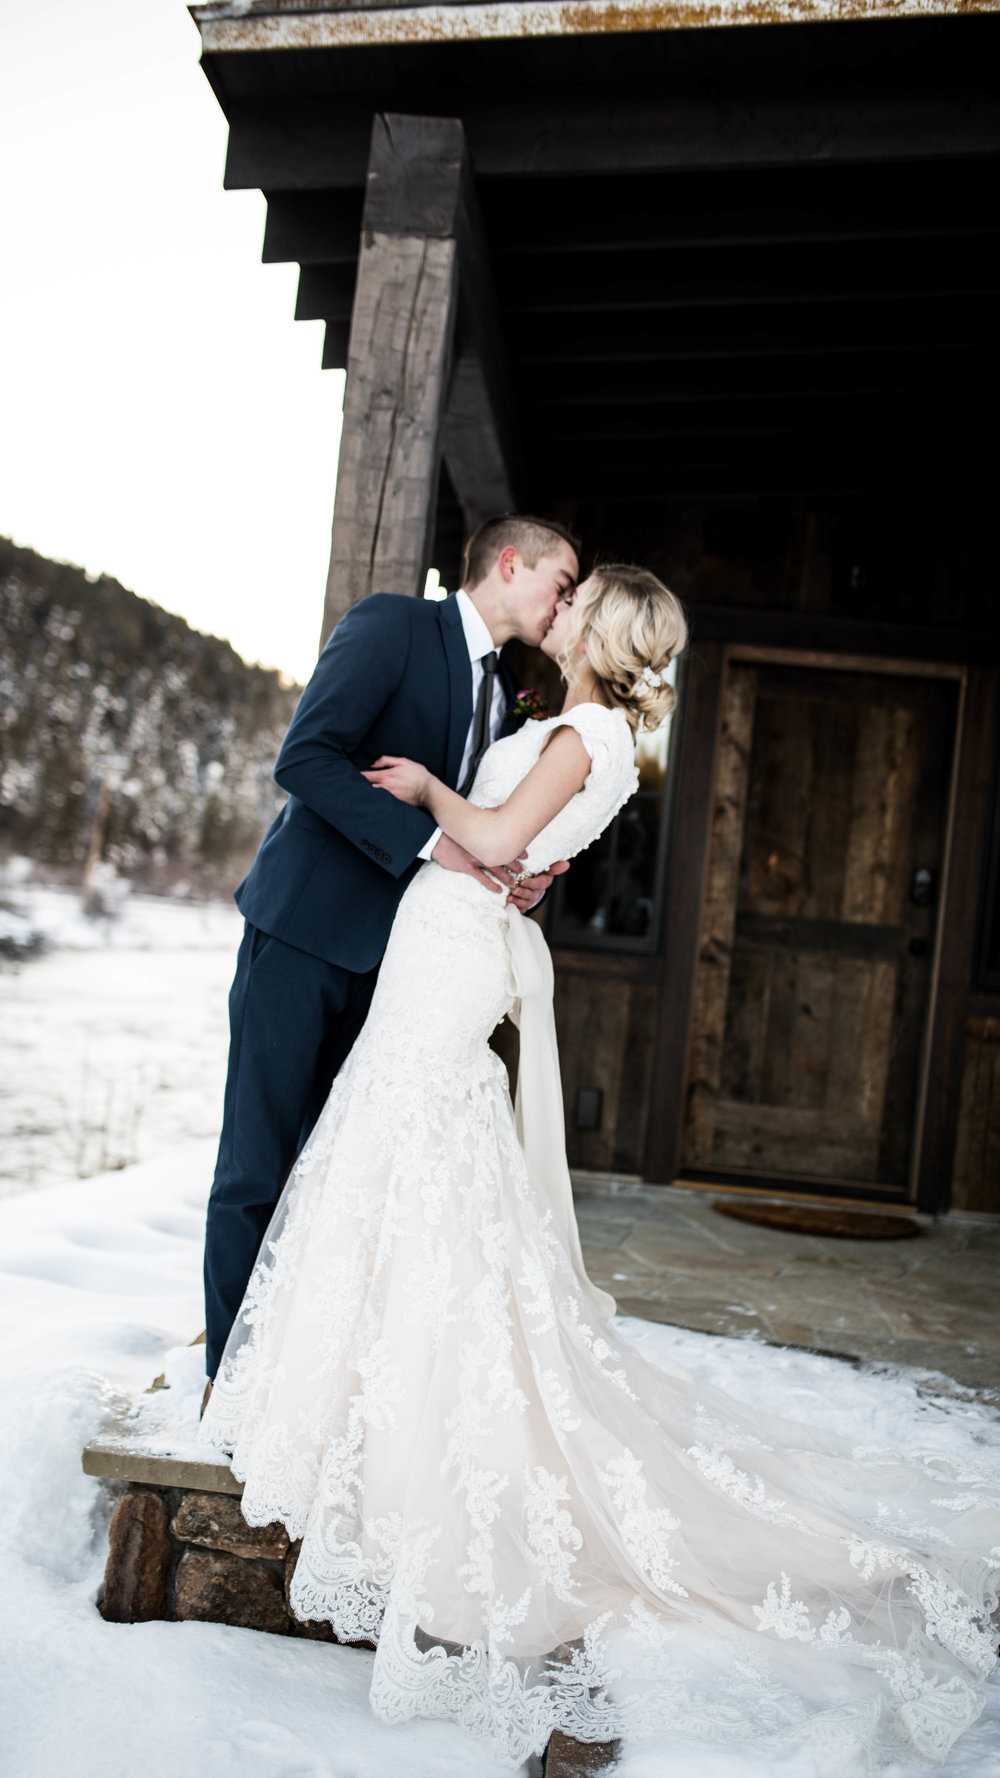 WinterWeddingBridalsTarghee (58 of 121).jpg